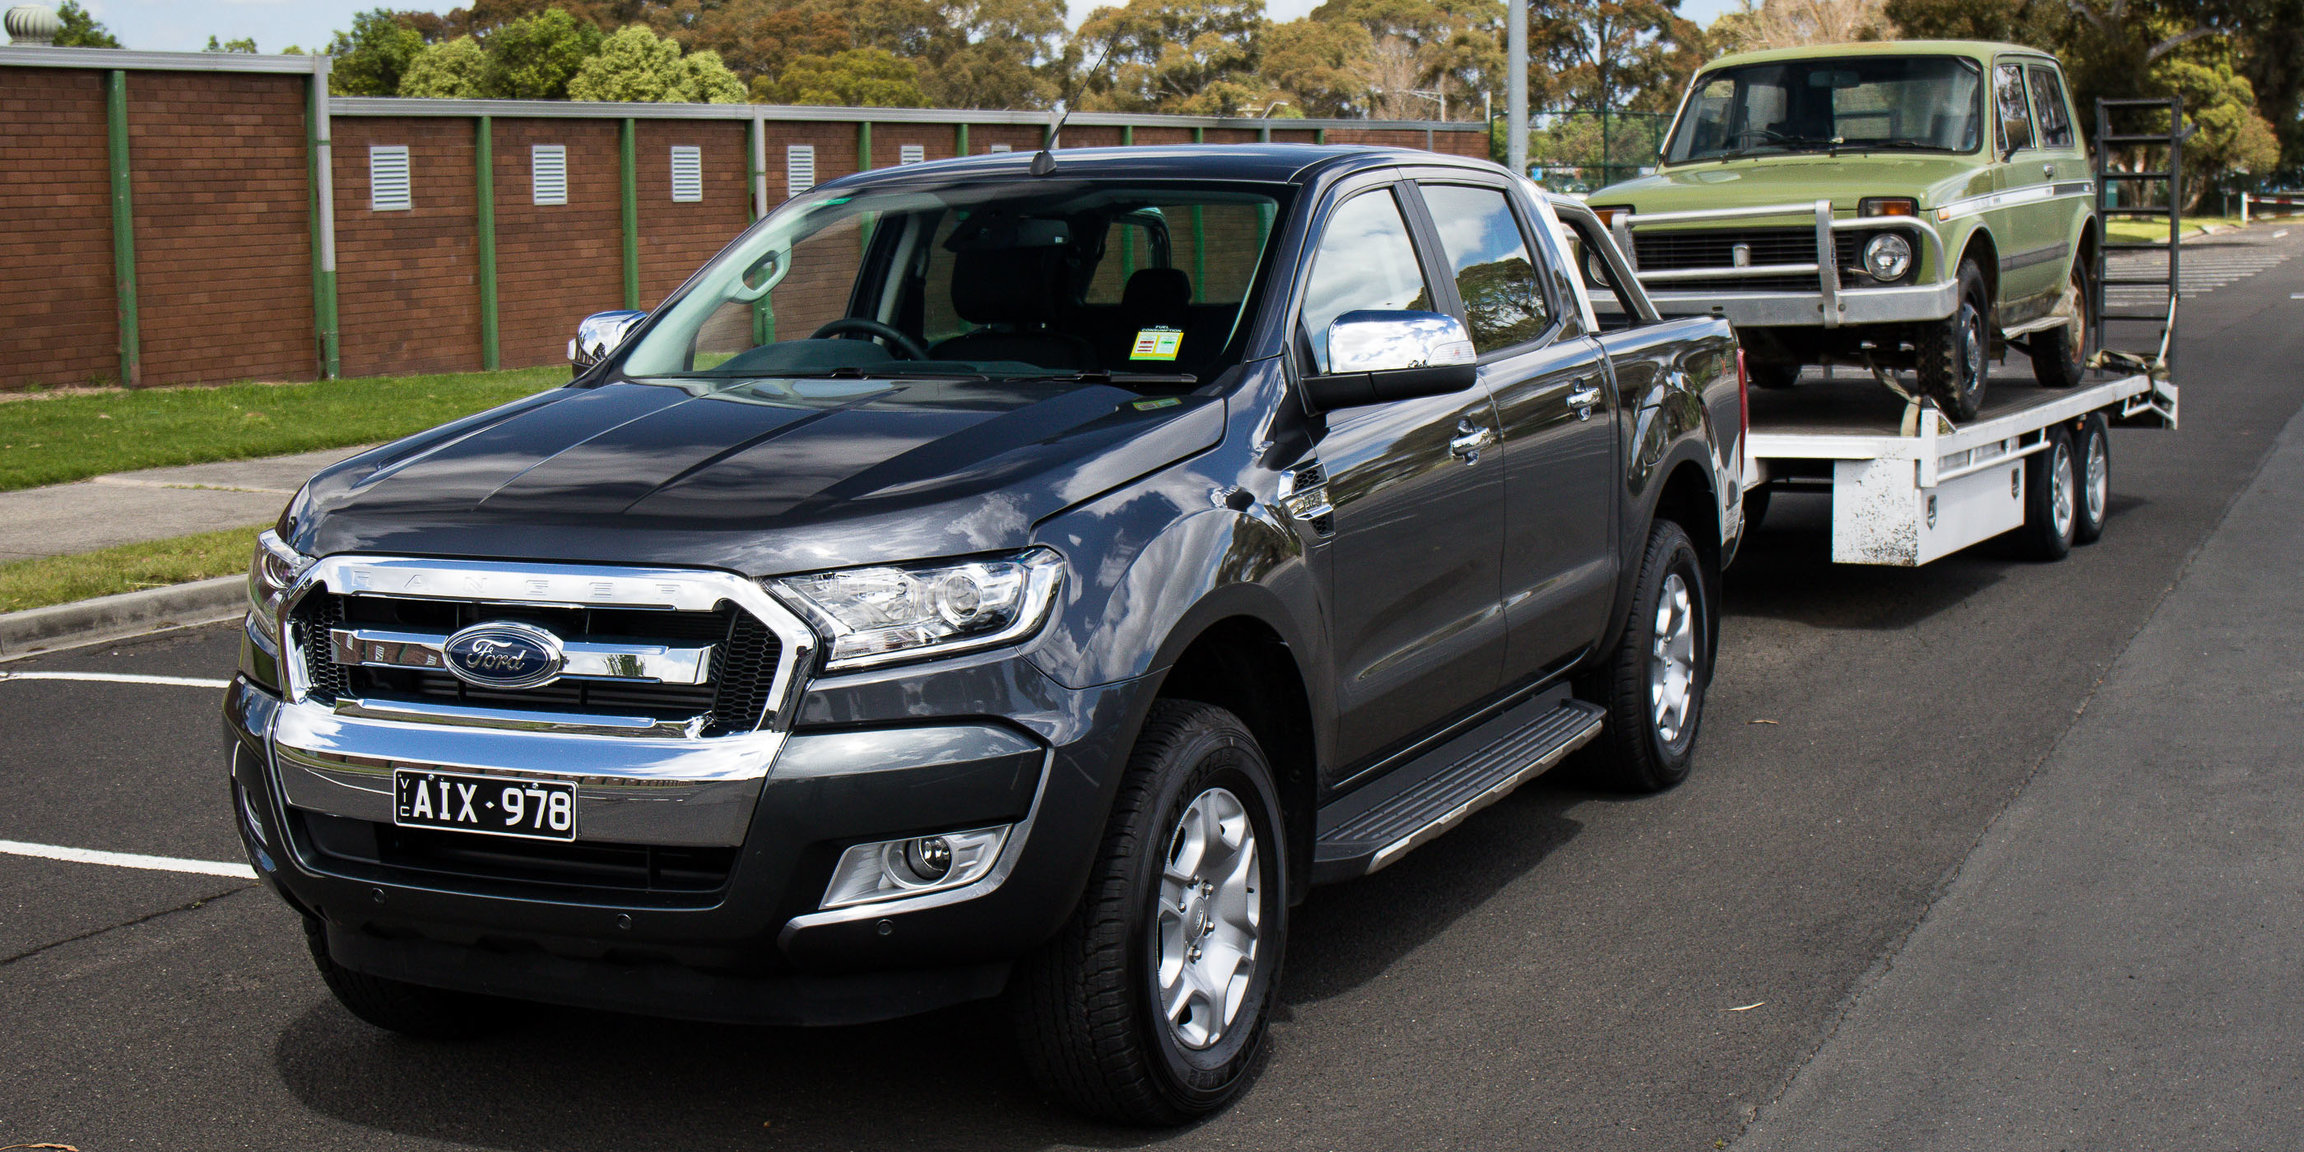 Ford xlt photo - 9